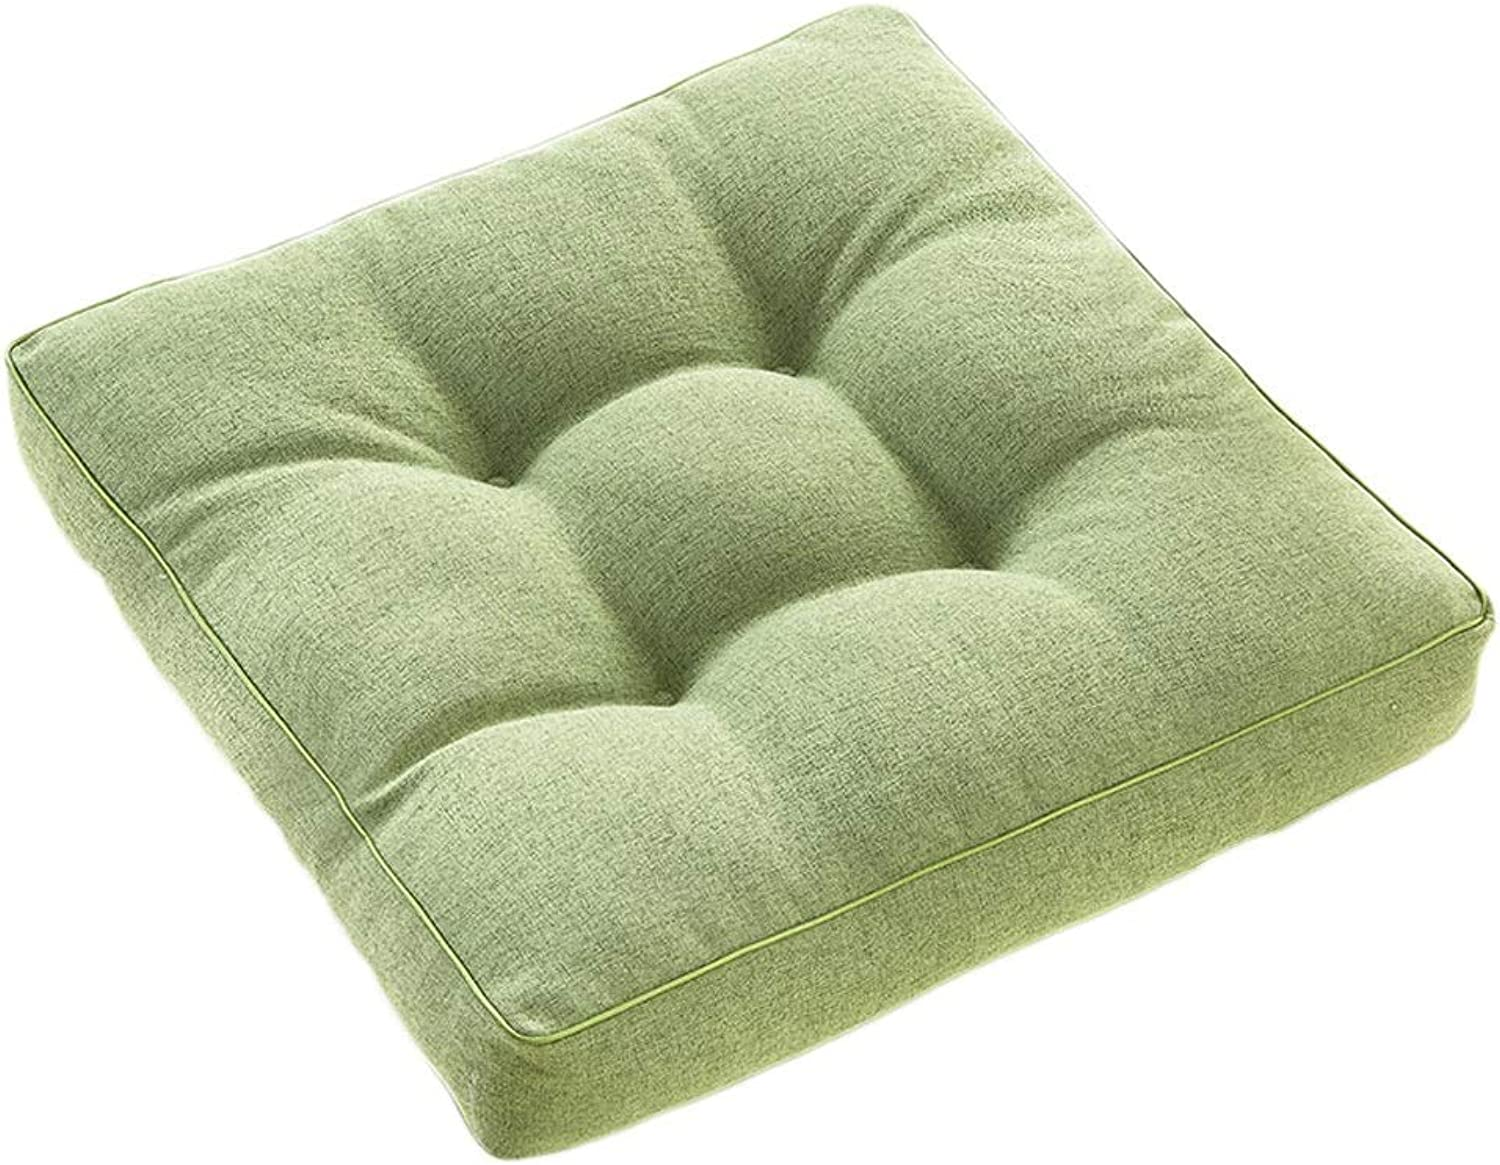 Seat Cushion Seat Cushion Green Flax Cushion Thicken Student Chair Cushion Sofa Office Chair Lumbar Support Four Seasons Available Soft and Comfortable Chair Pad (color   B, Size   40  40  8cm)